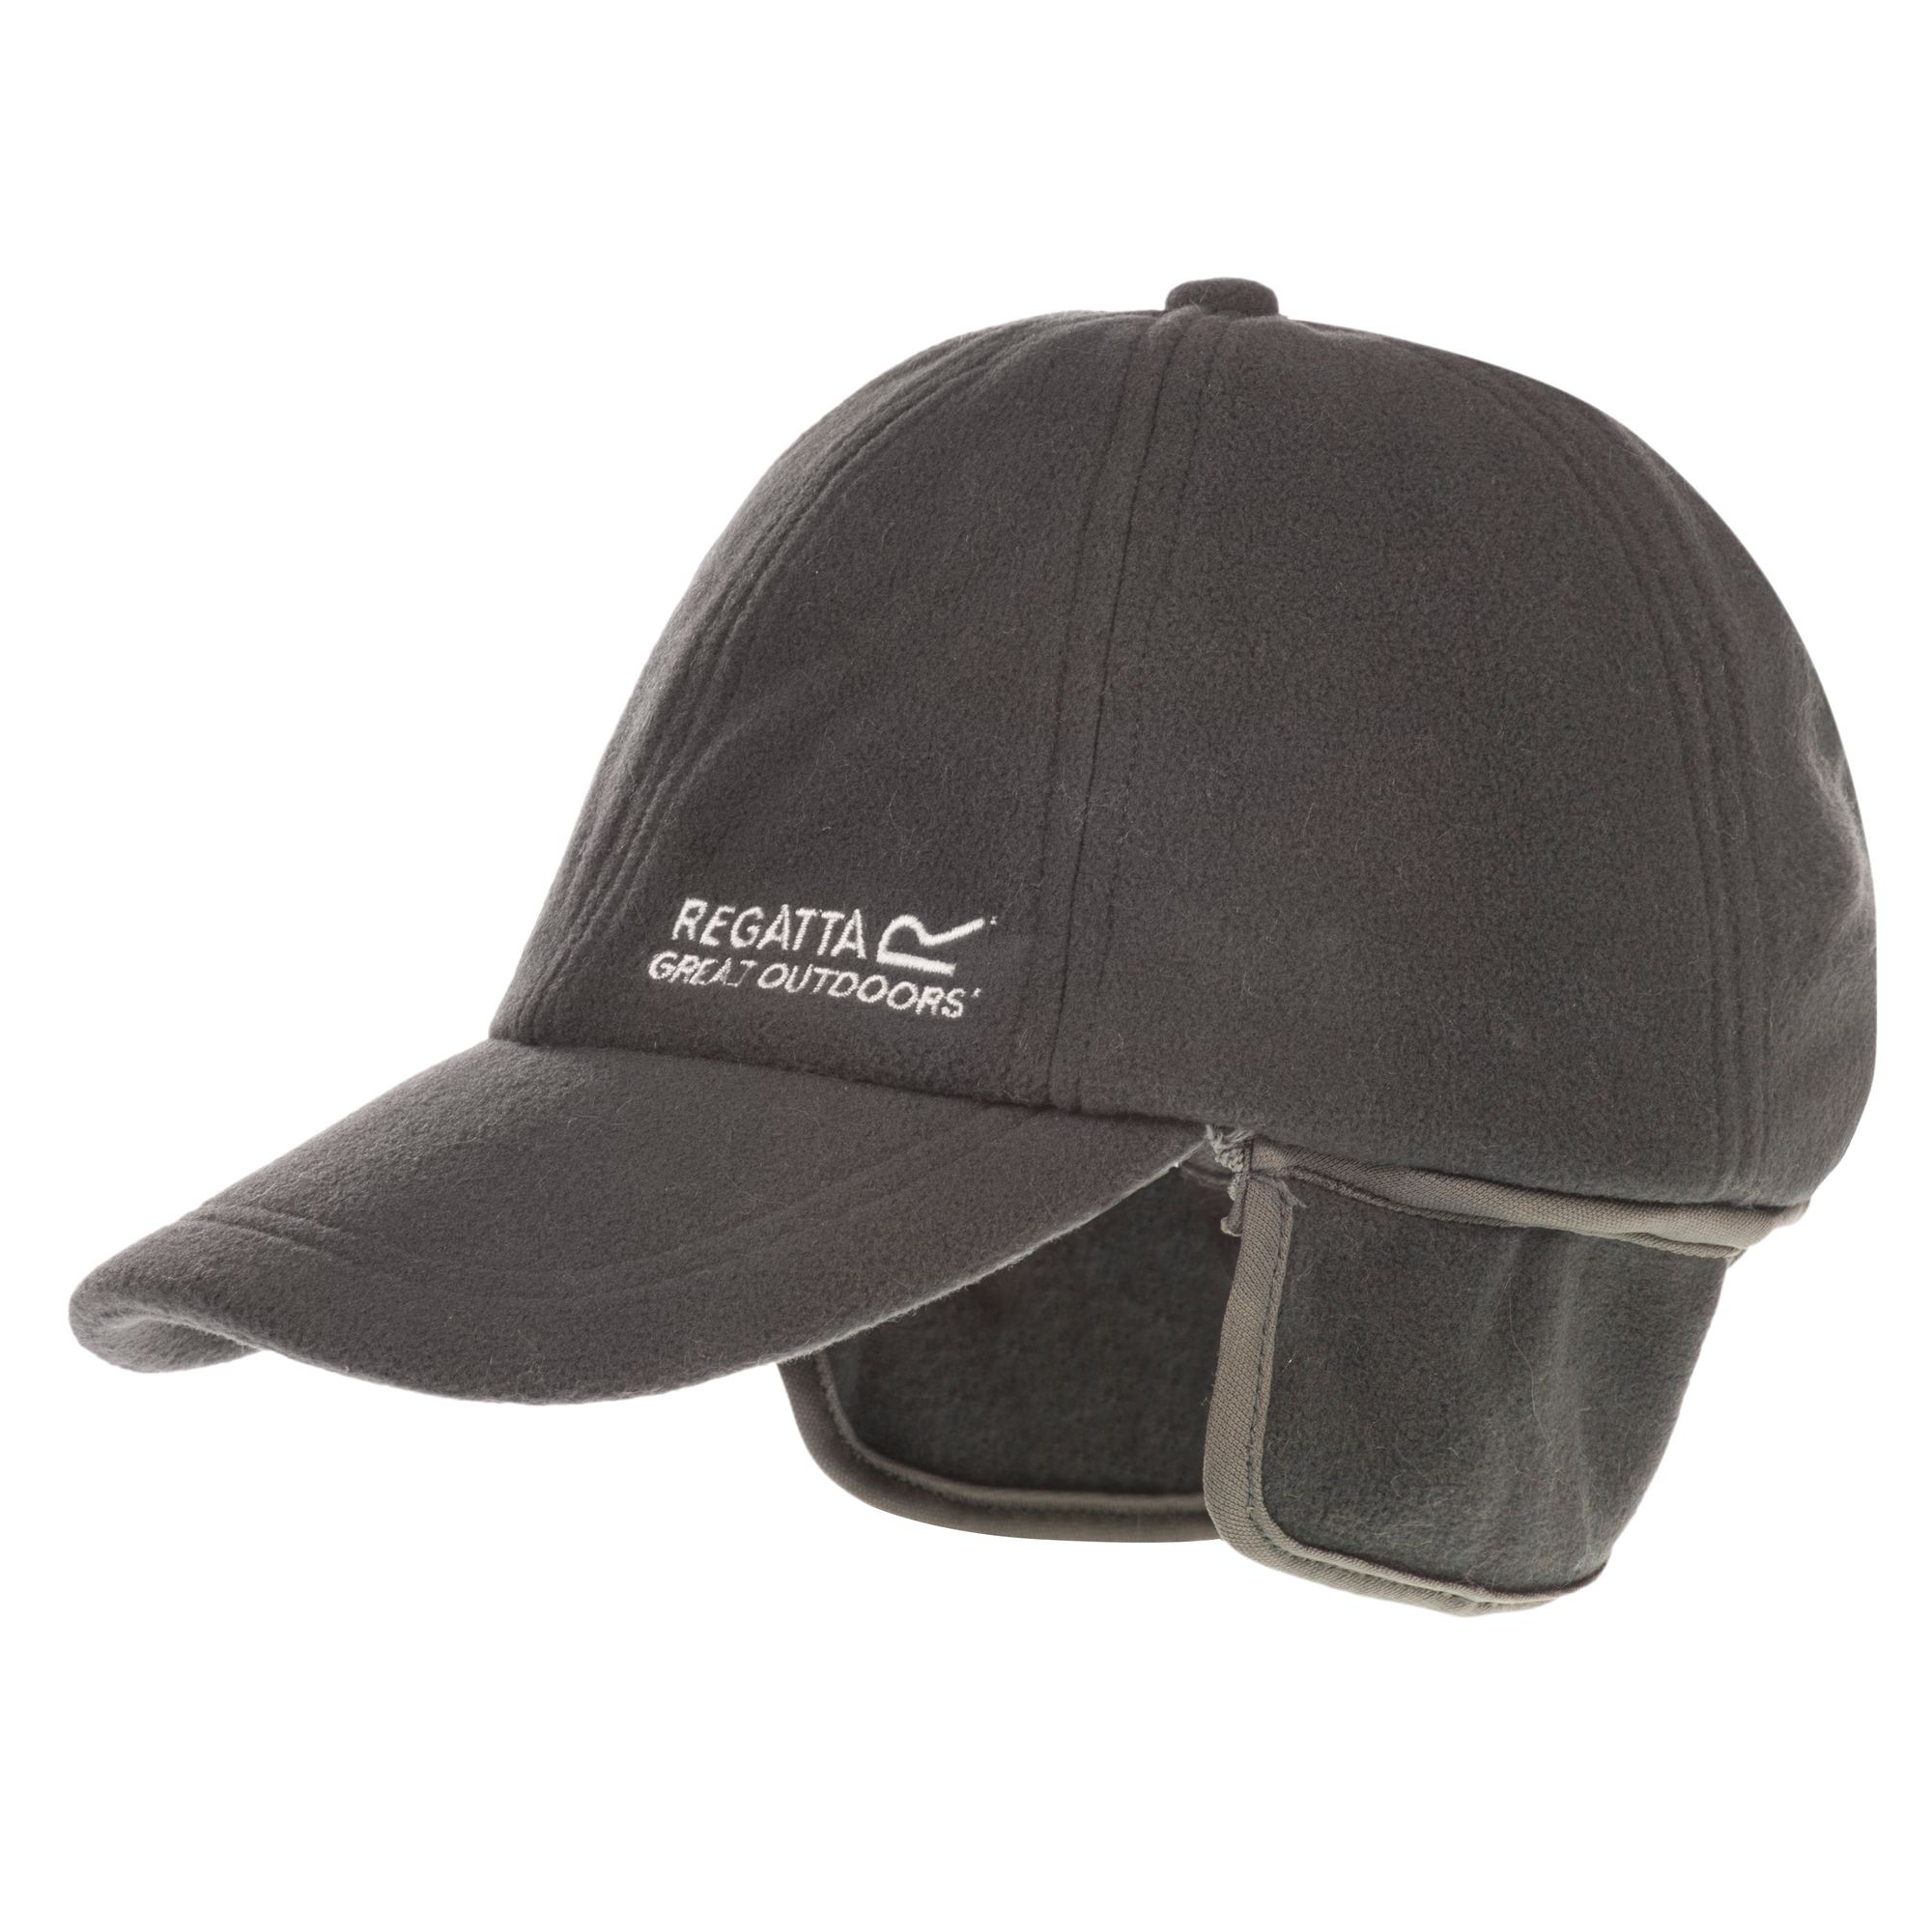 Find great deals on eBay for men's hats with ear flaps. Shop with confidence.